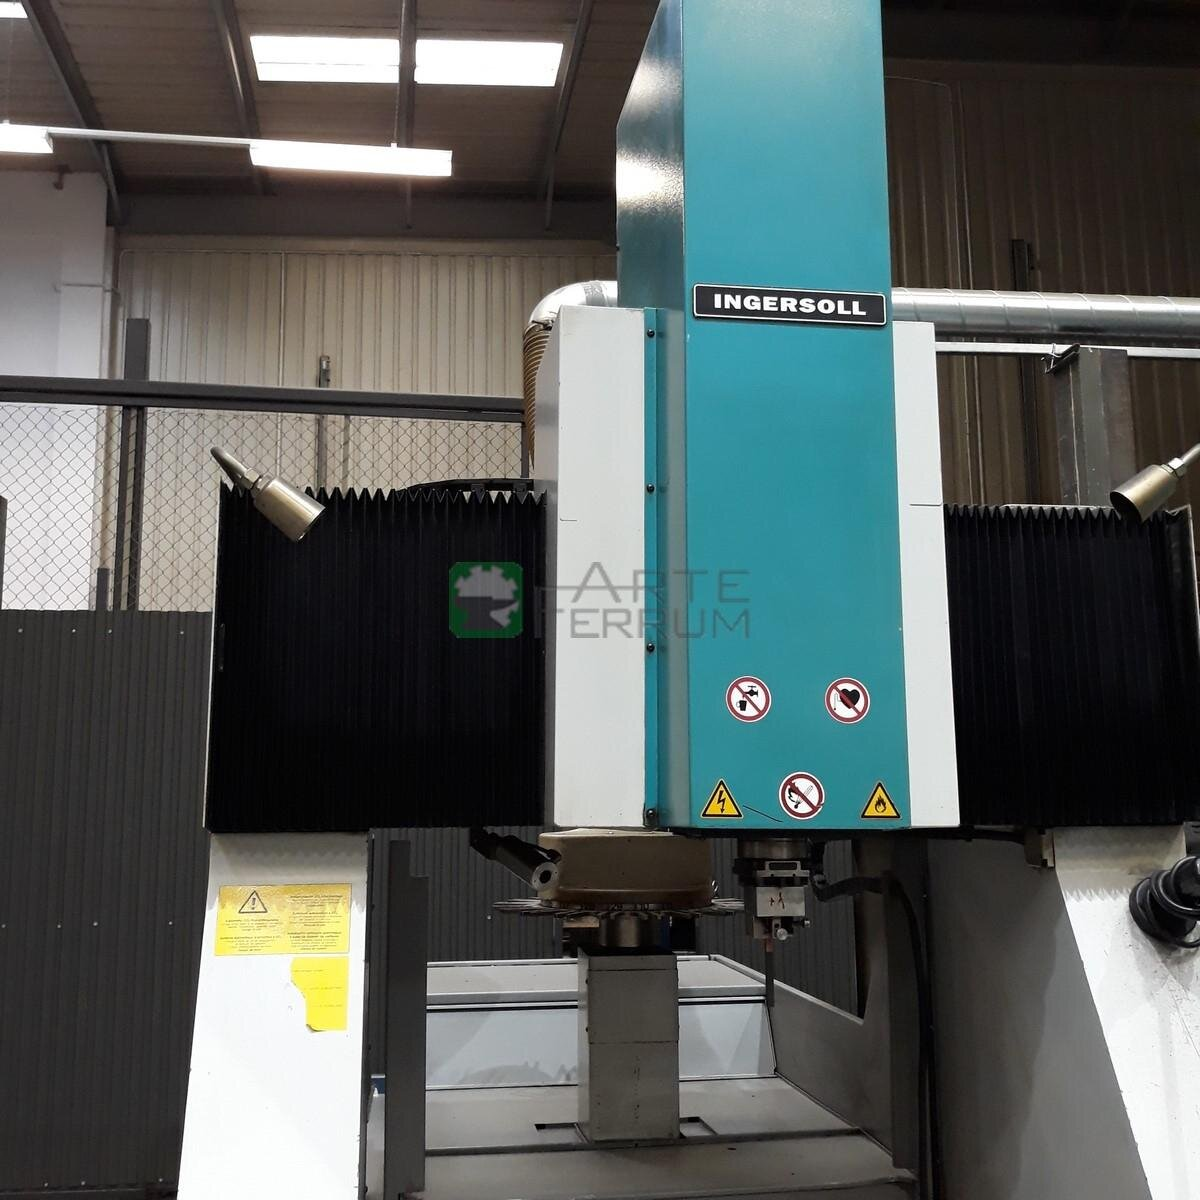 ingersoll gantry 800 edm used for sale (2)